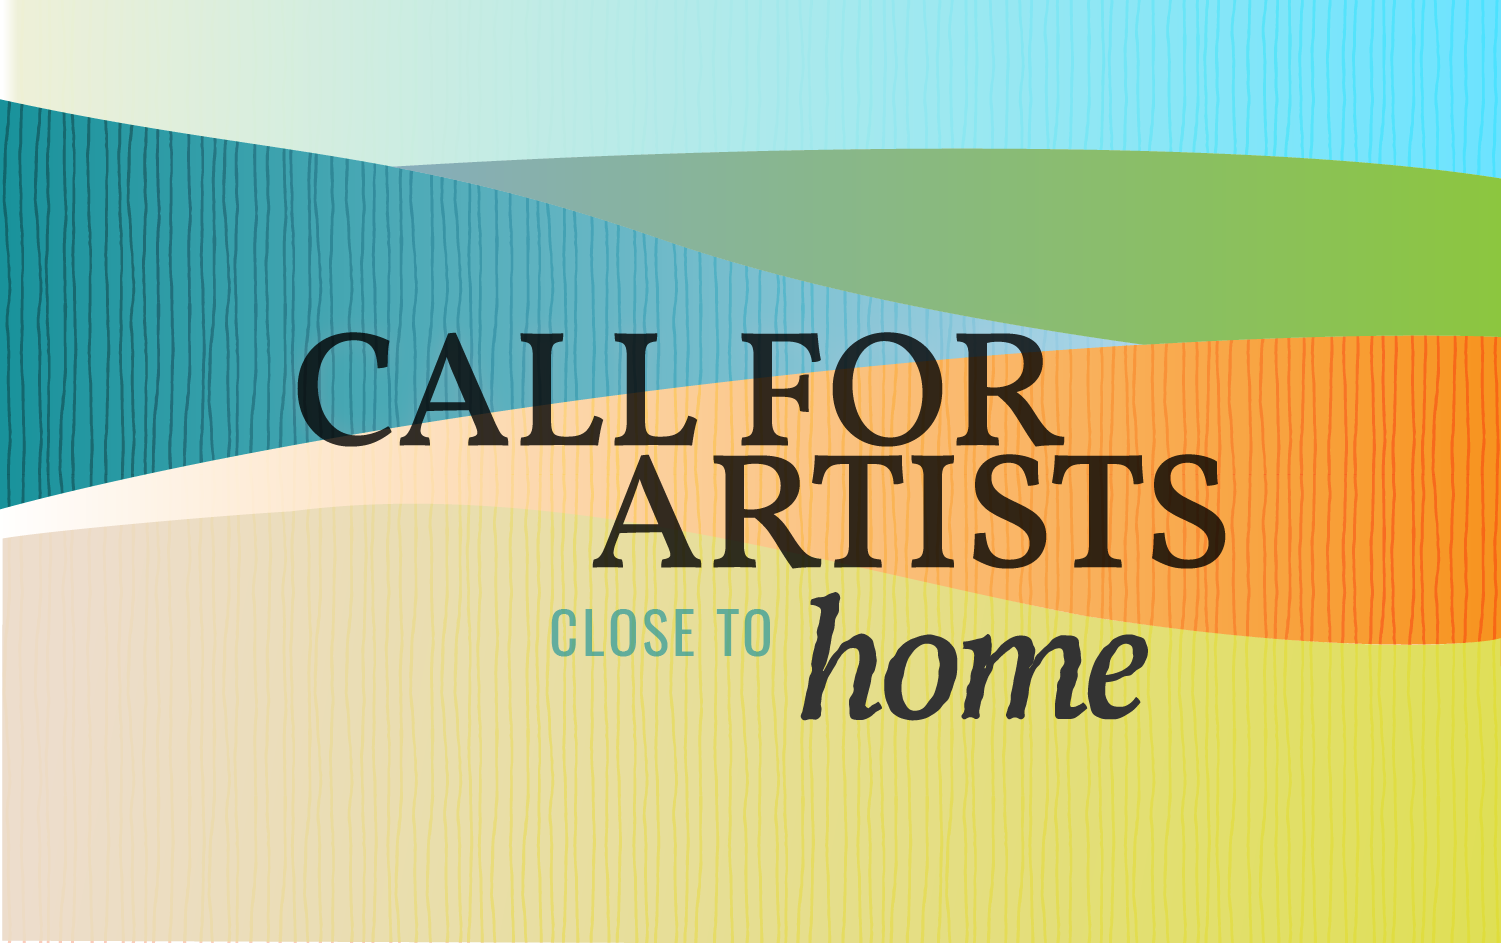 Call for artists close to home - Canadian musician job